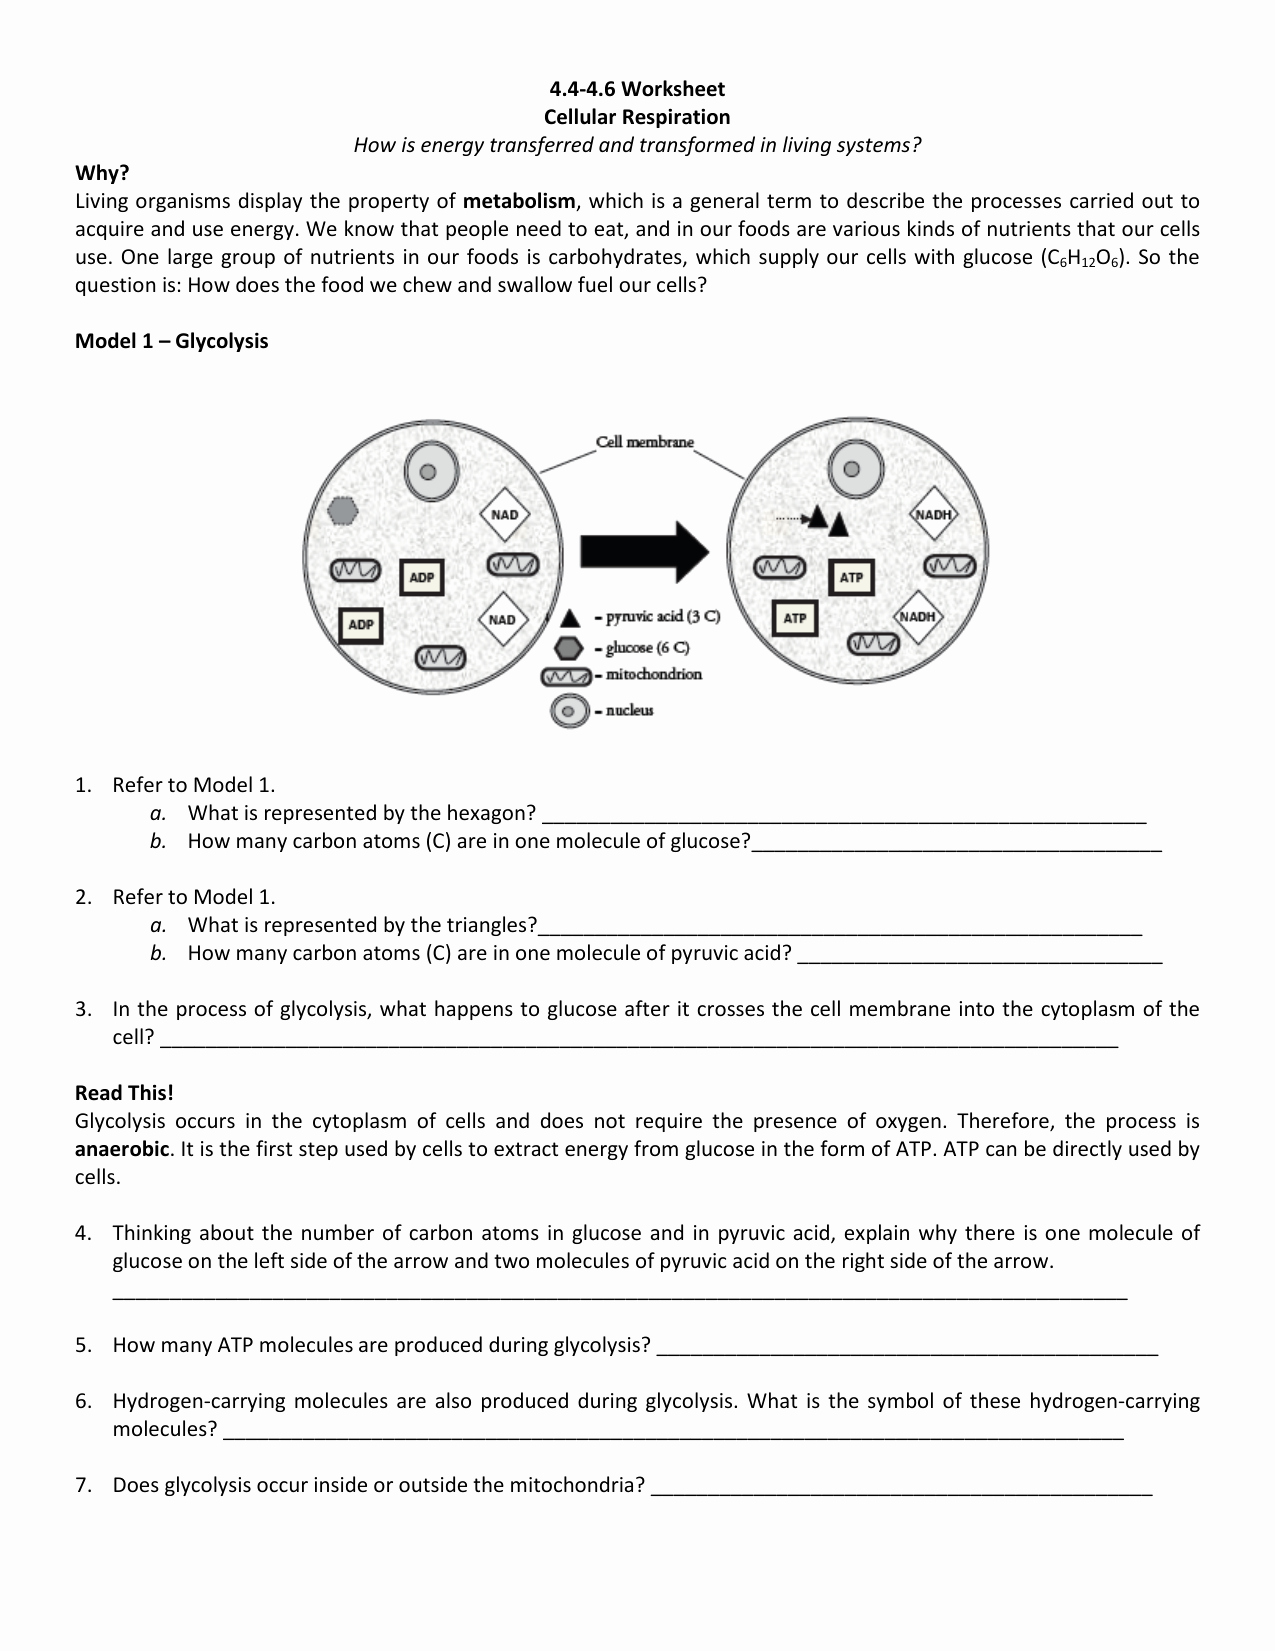 Energy Transformation Worksheet Answer Key Luxury Synthesis and Cellular Respiration Worksheet High